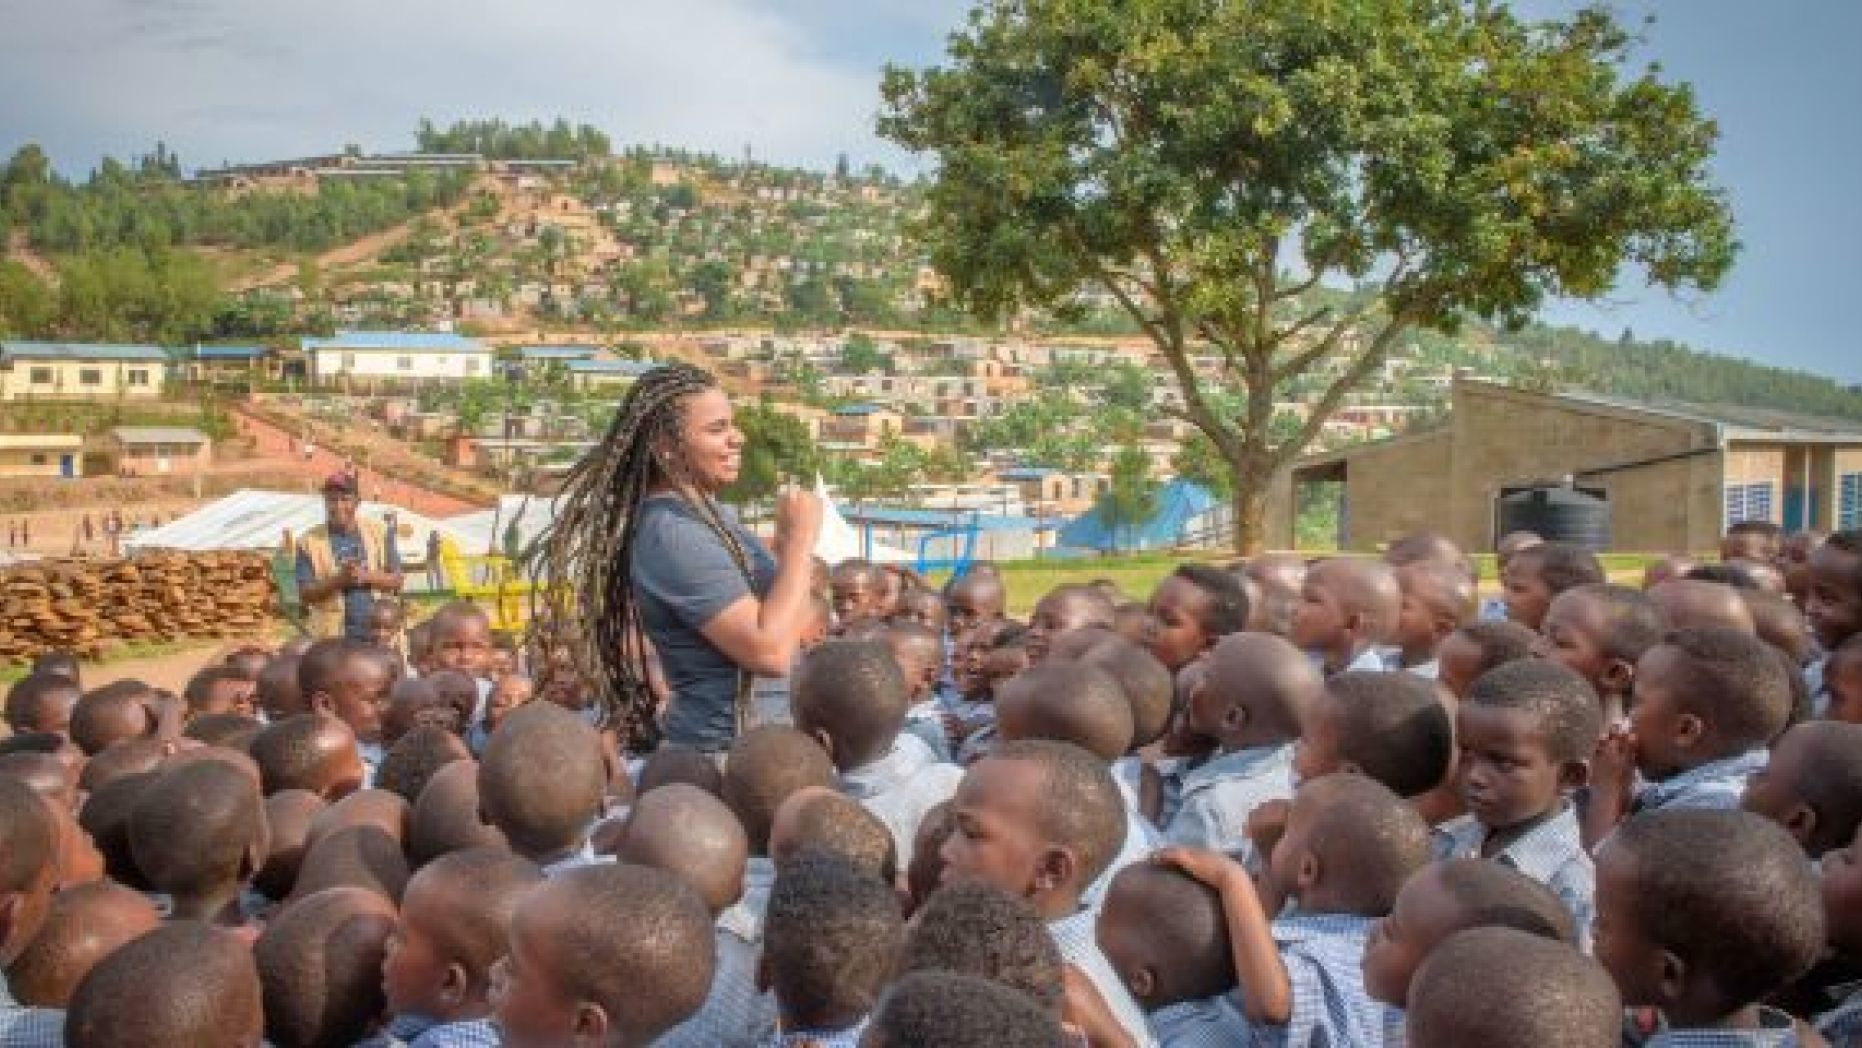 Wé McDonald visiting Rwanda with the Christian humanitarian agency World Vision, celebrating with a community receiving clean water for the first time and meeting children impacted by World Vision's work.